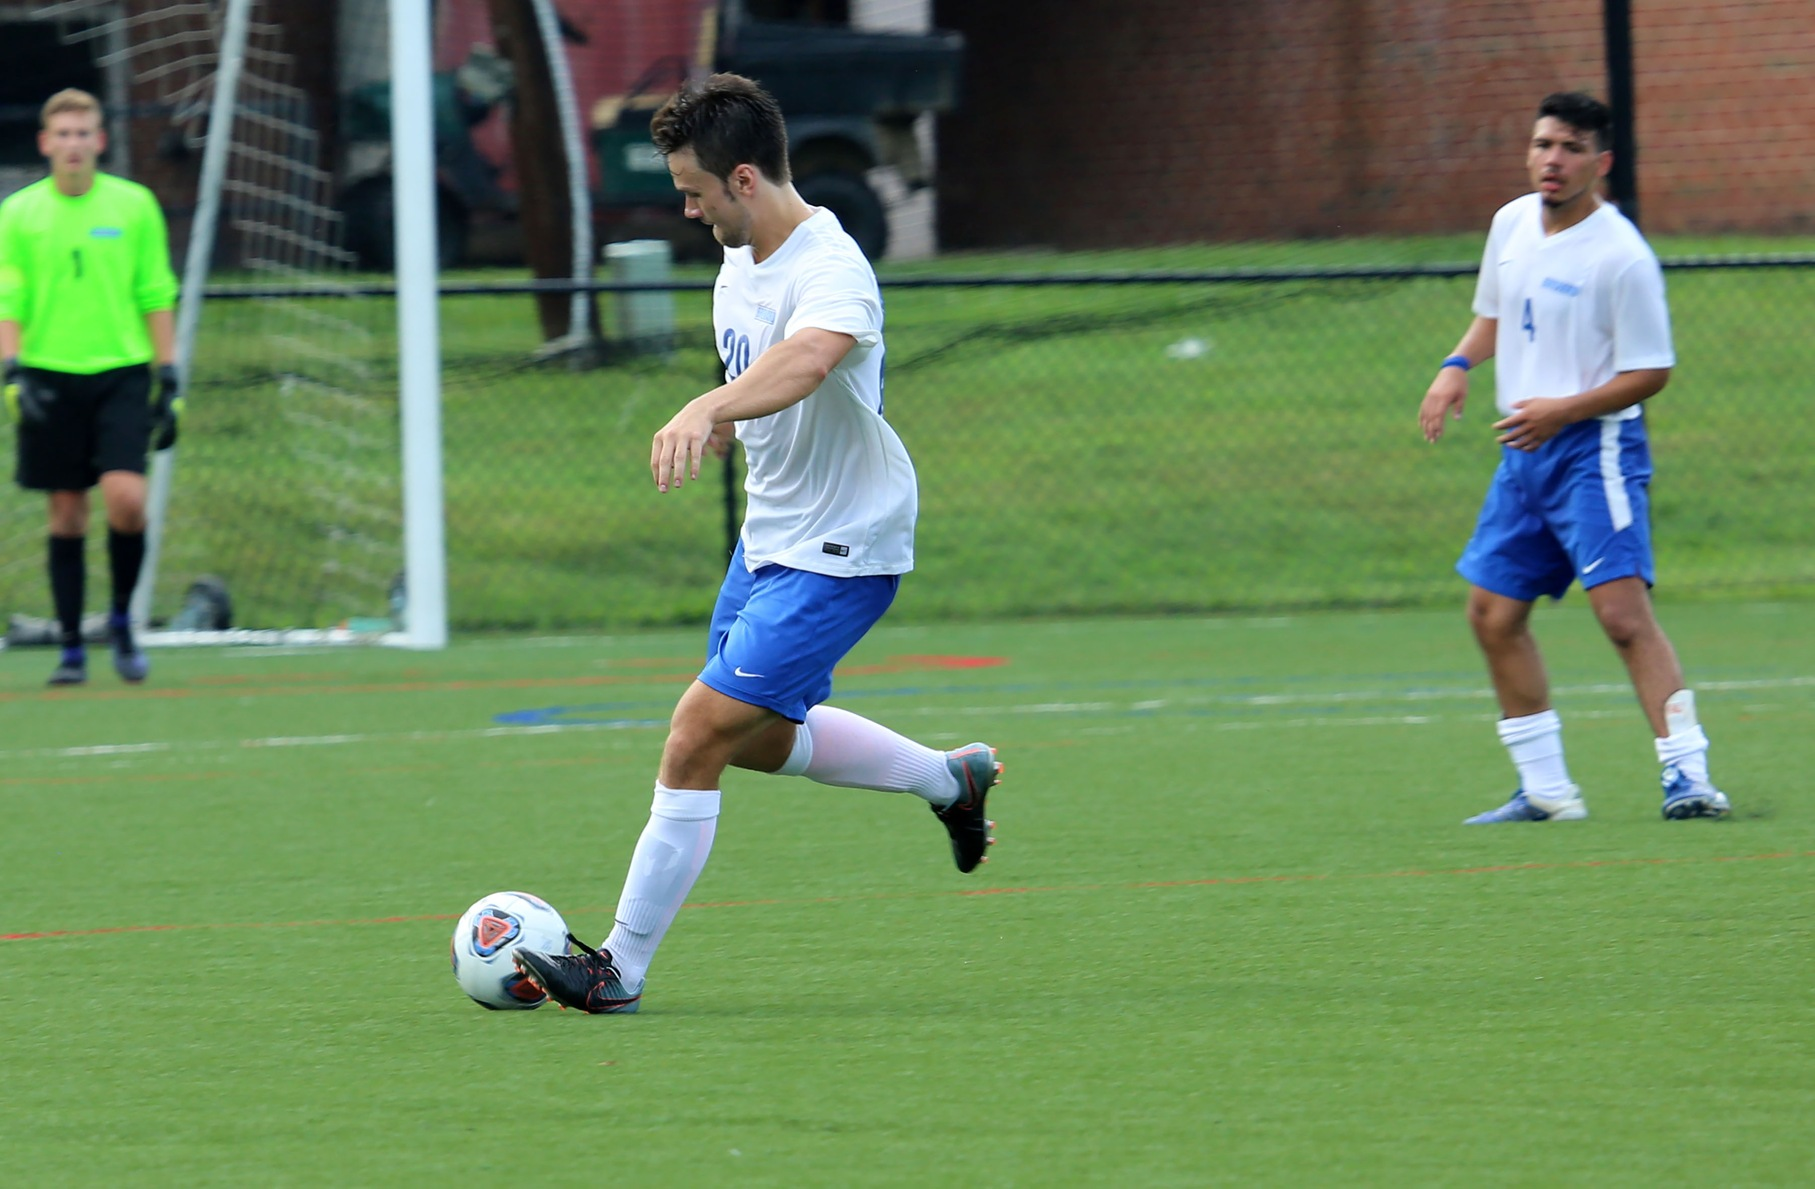 Brevard Drops Tight 2-1 Match to Methodist